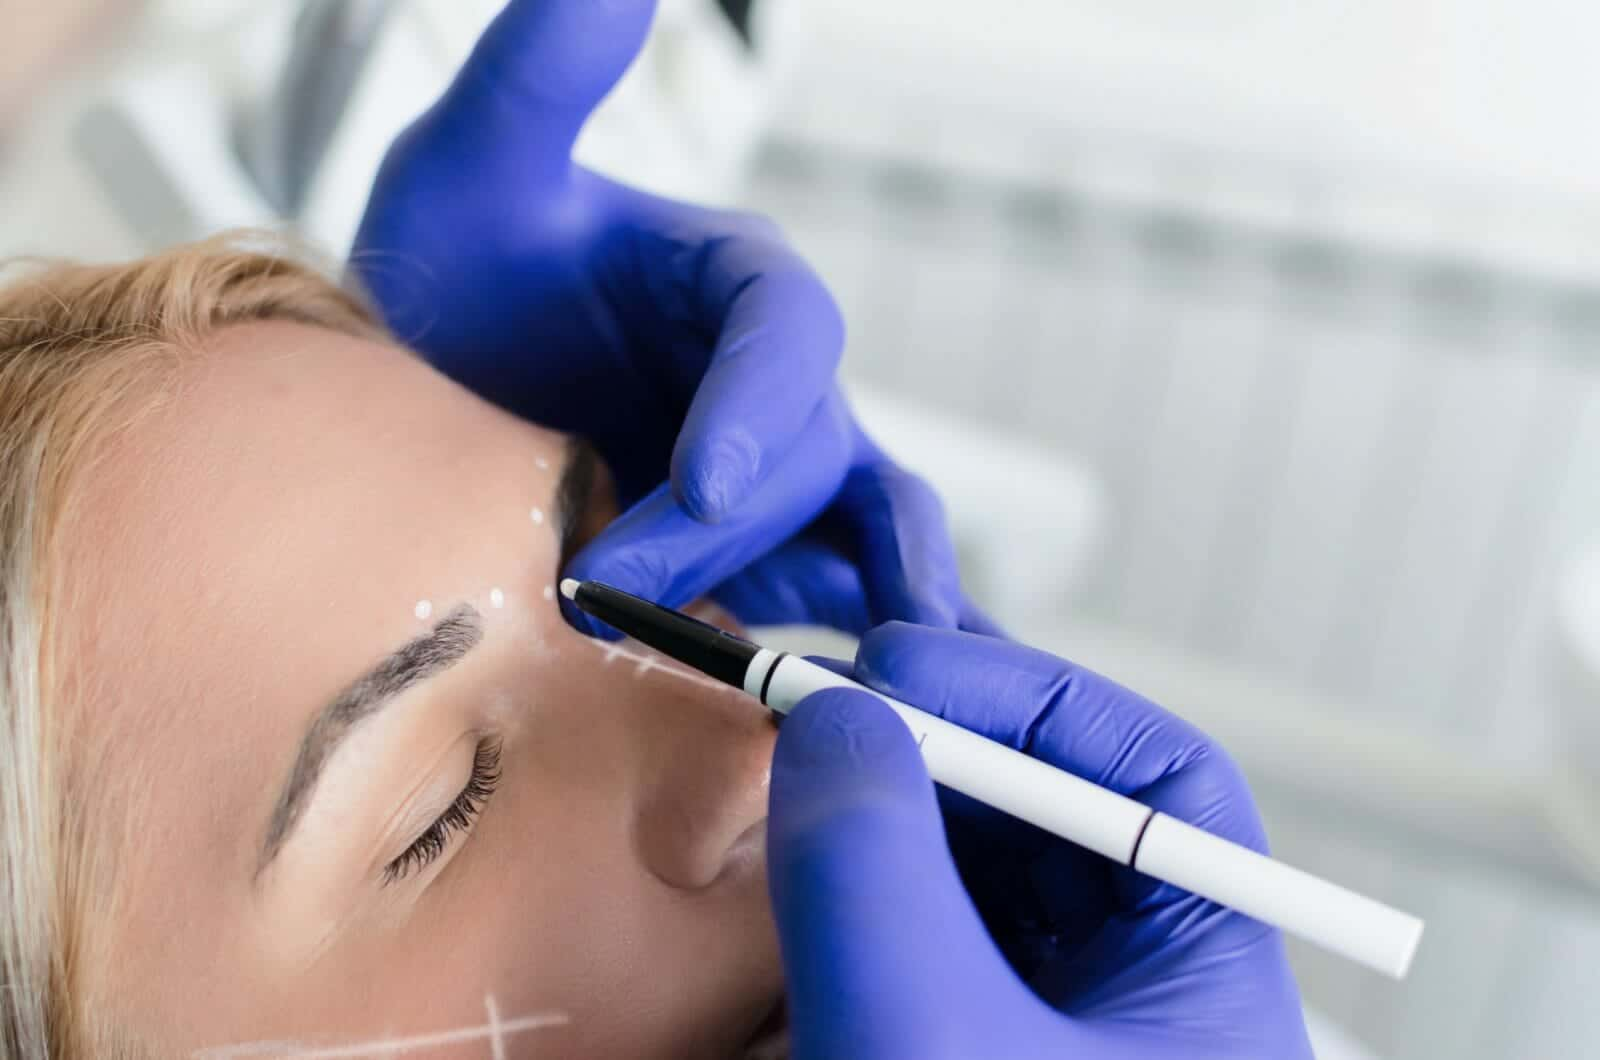 Doctor doing preparations for botox procedure on woman